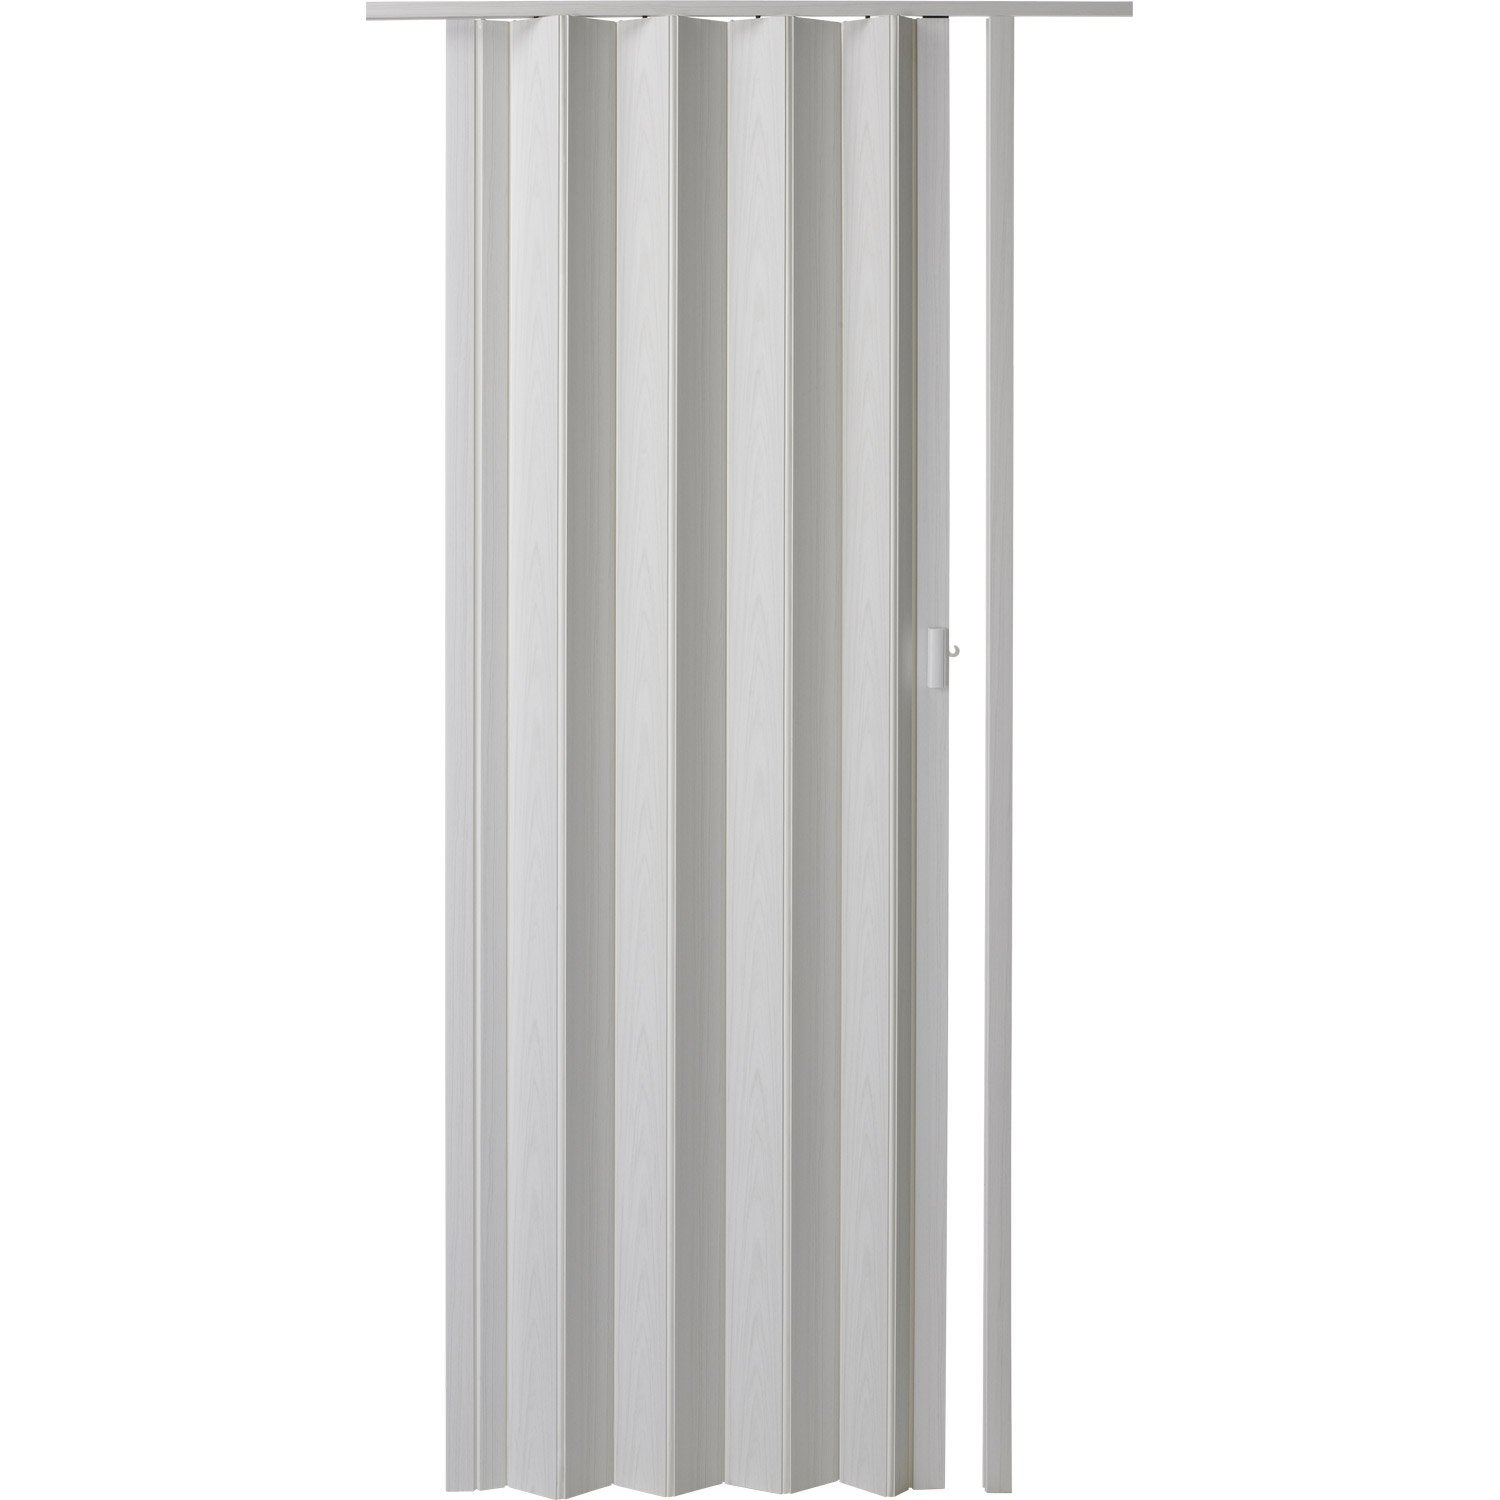 Porte extensible rio fr ne blanc 205 x 85 cm pais d for Porte accordeon